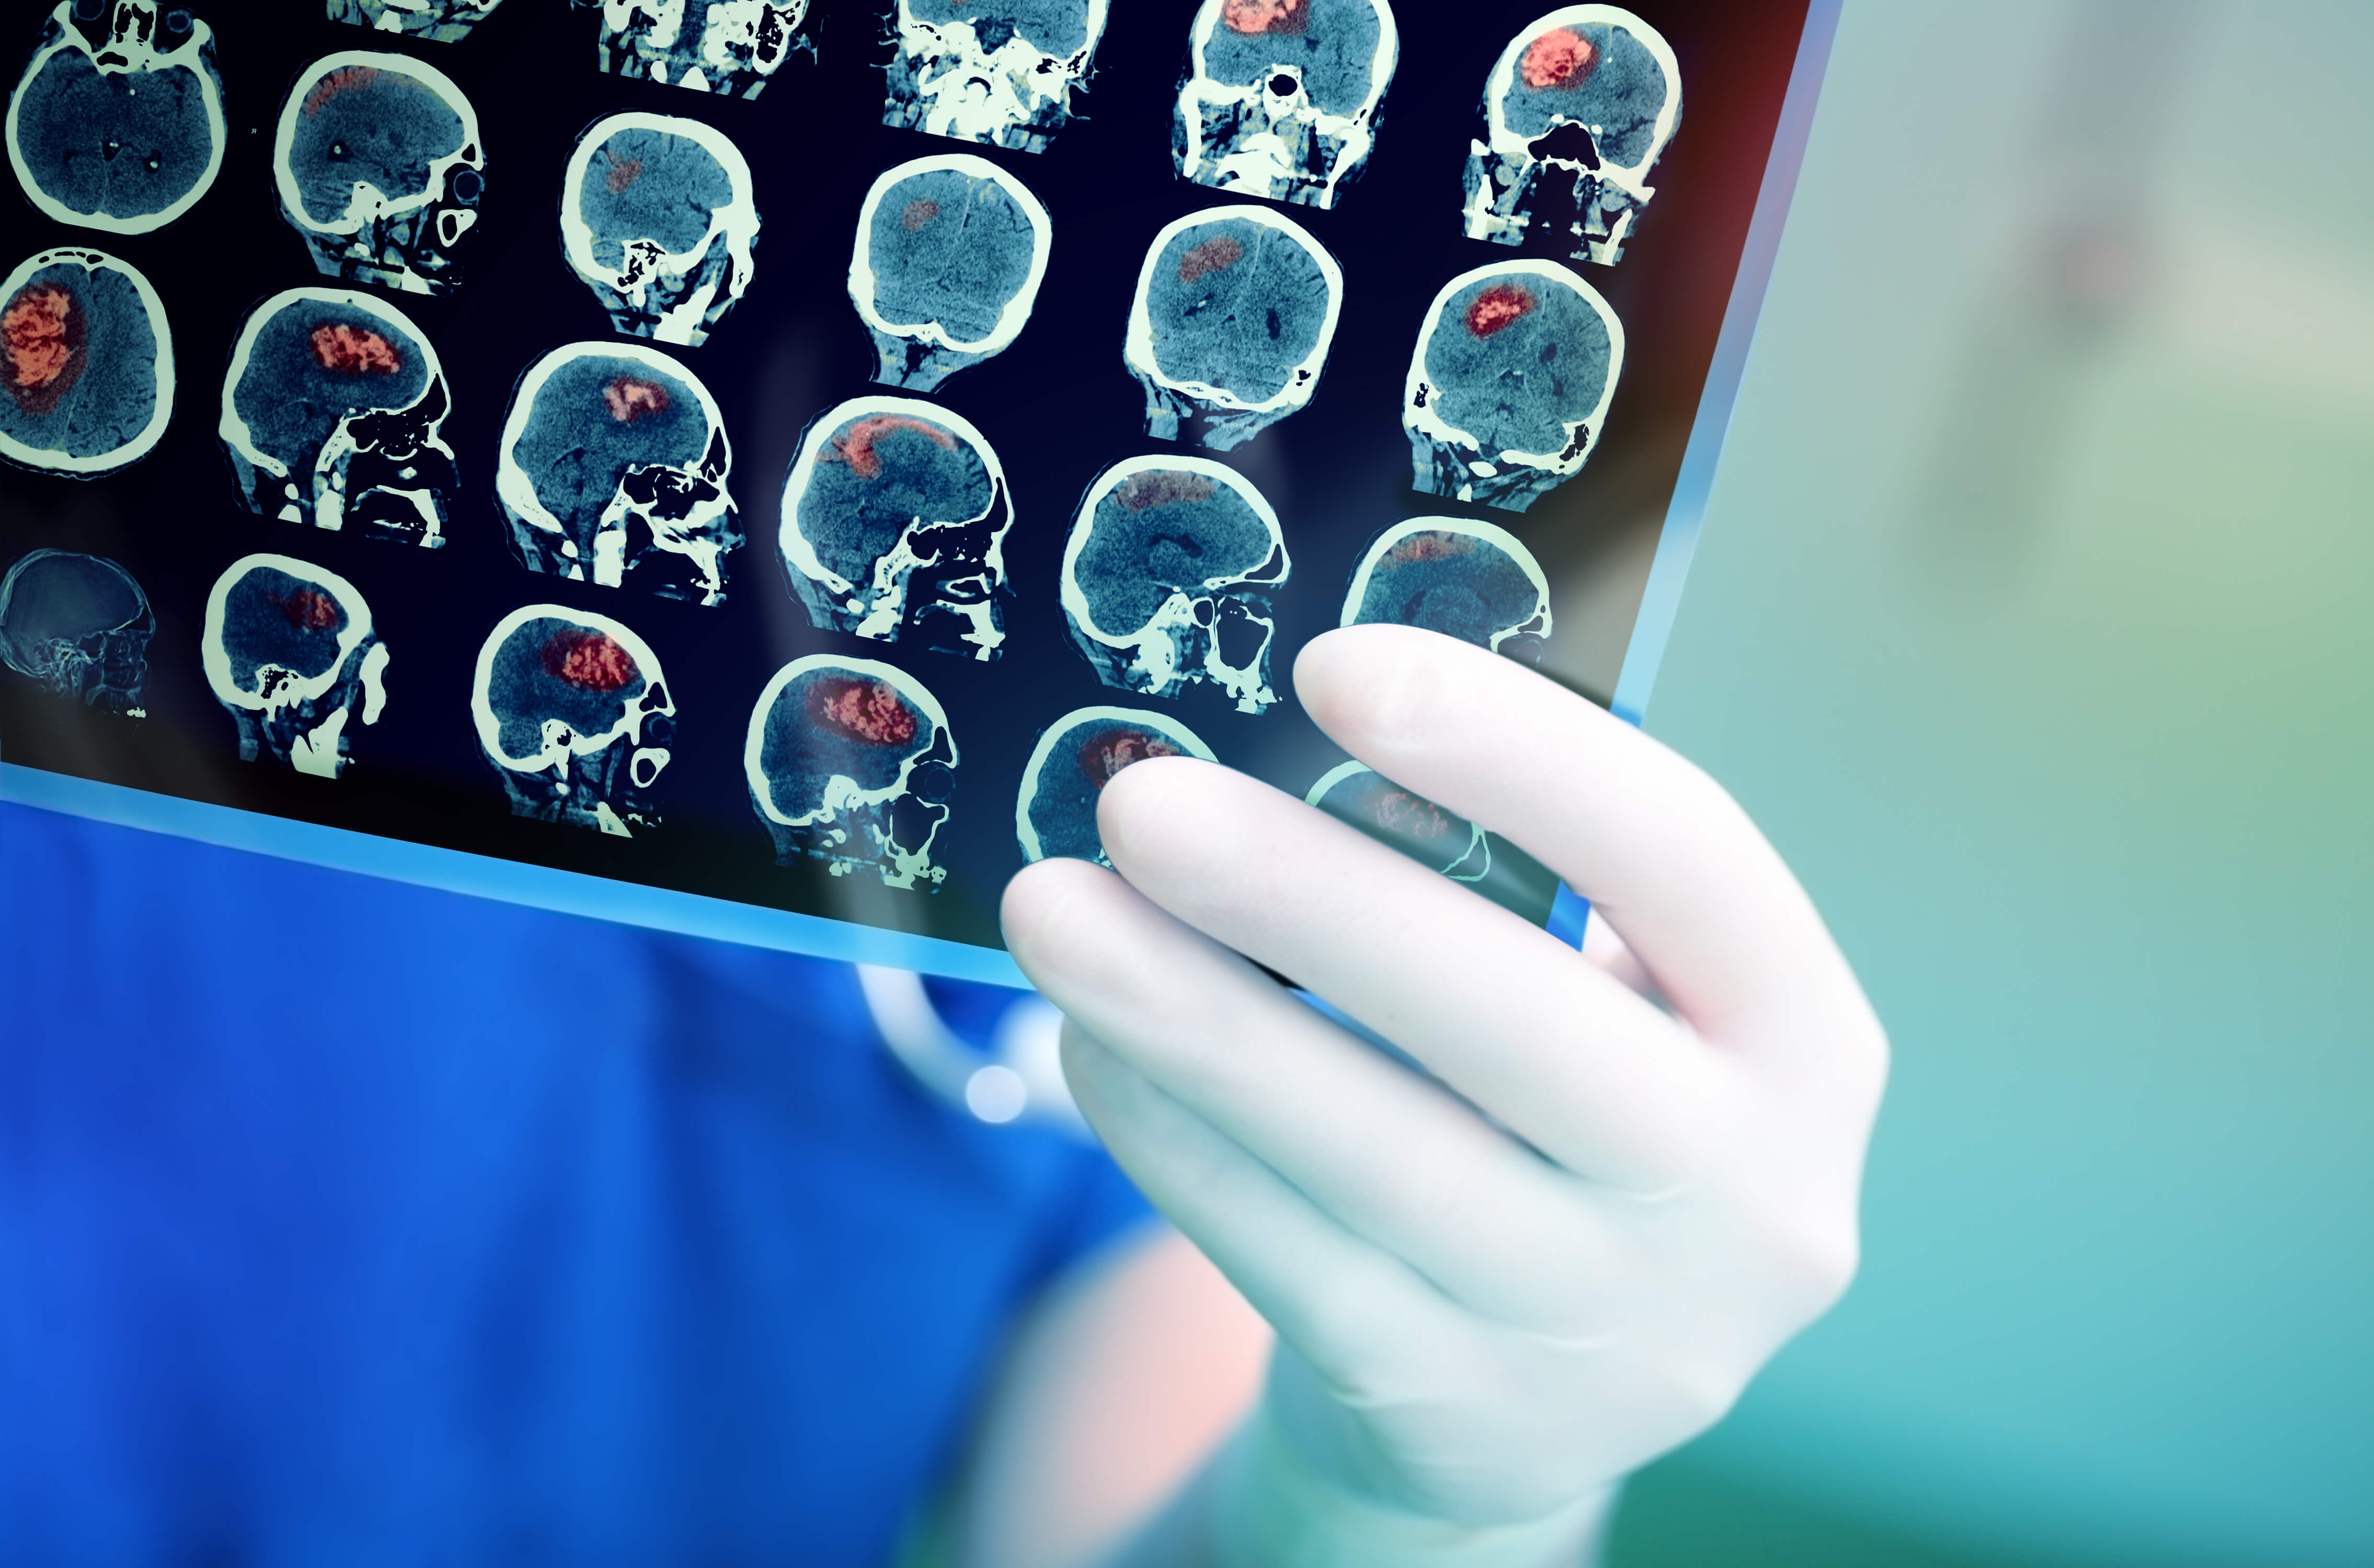 Self-Tuning Brain Implant May Help with Parkinson's Disease